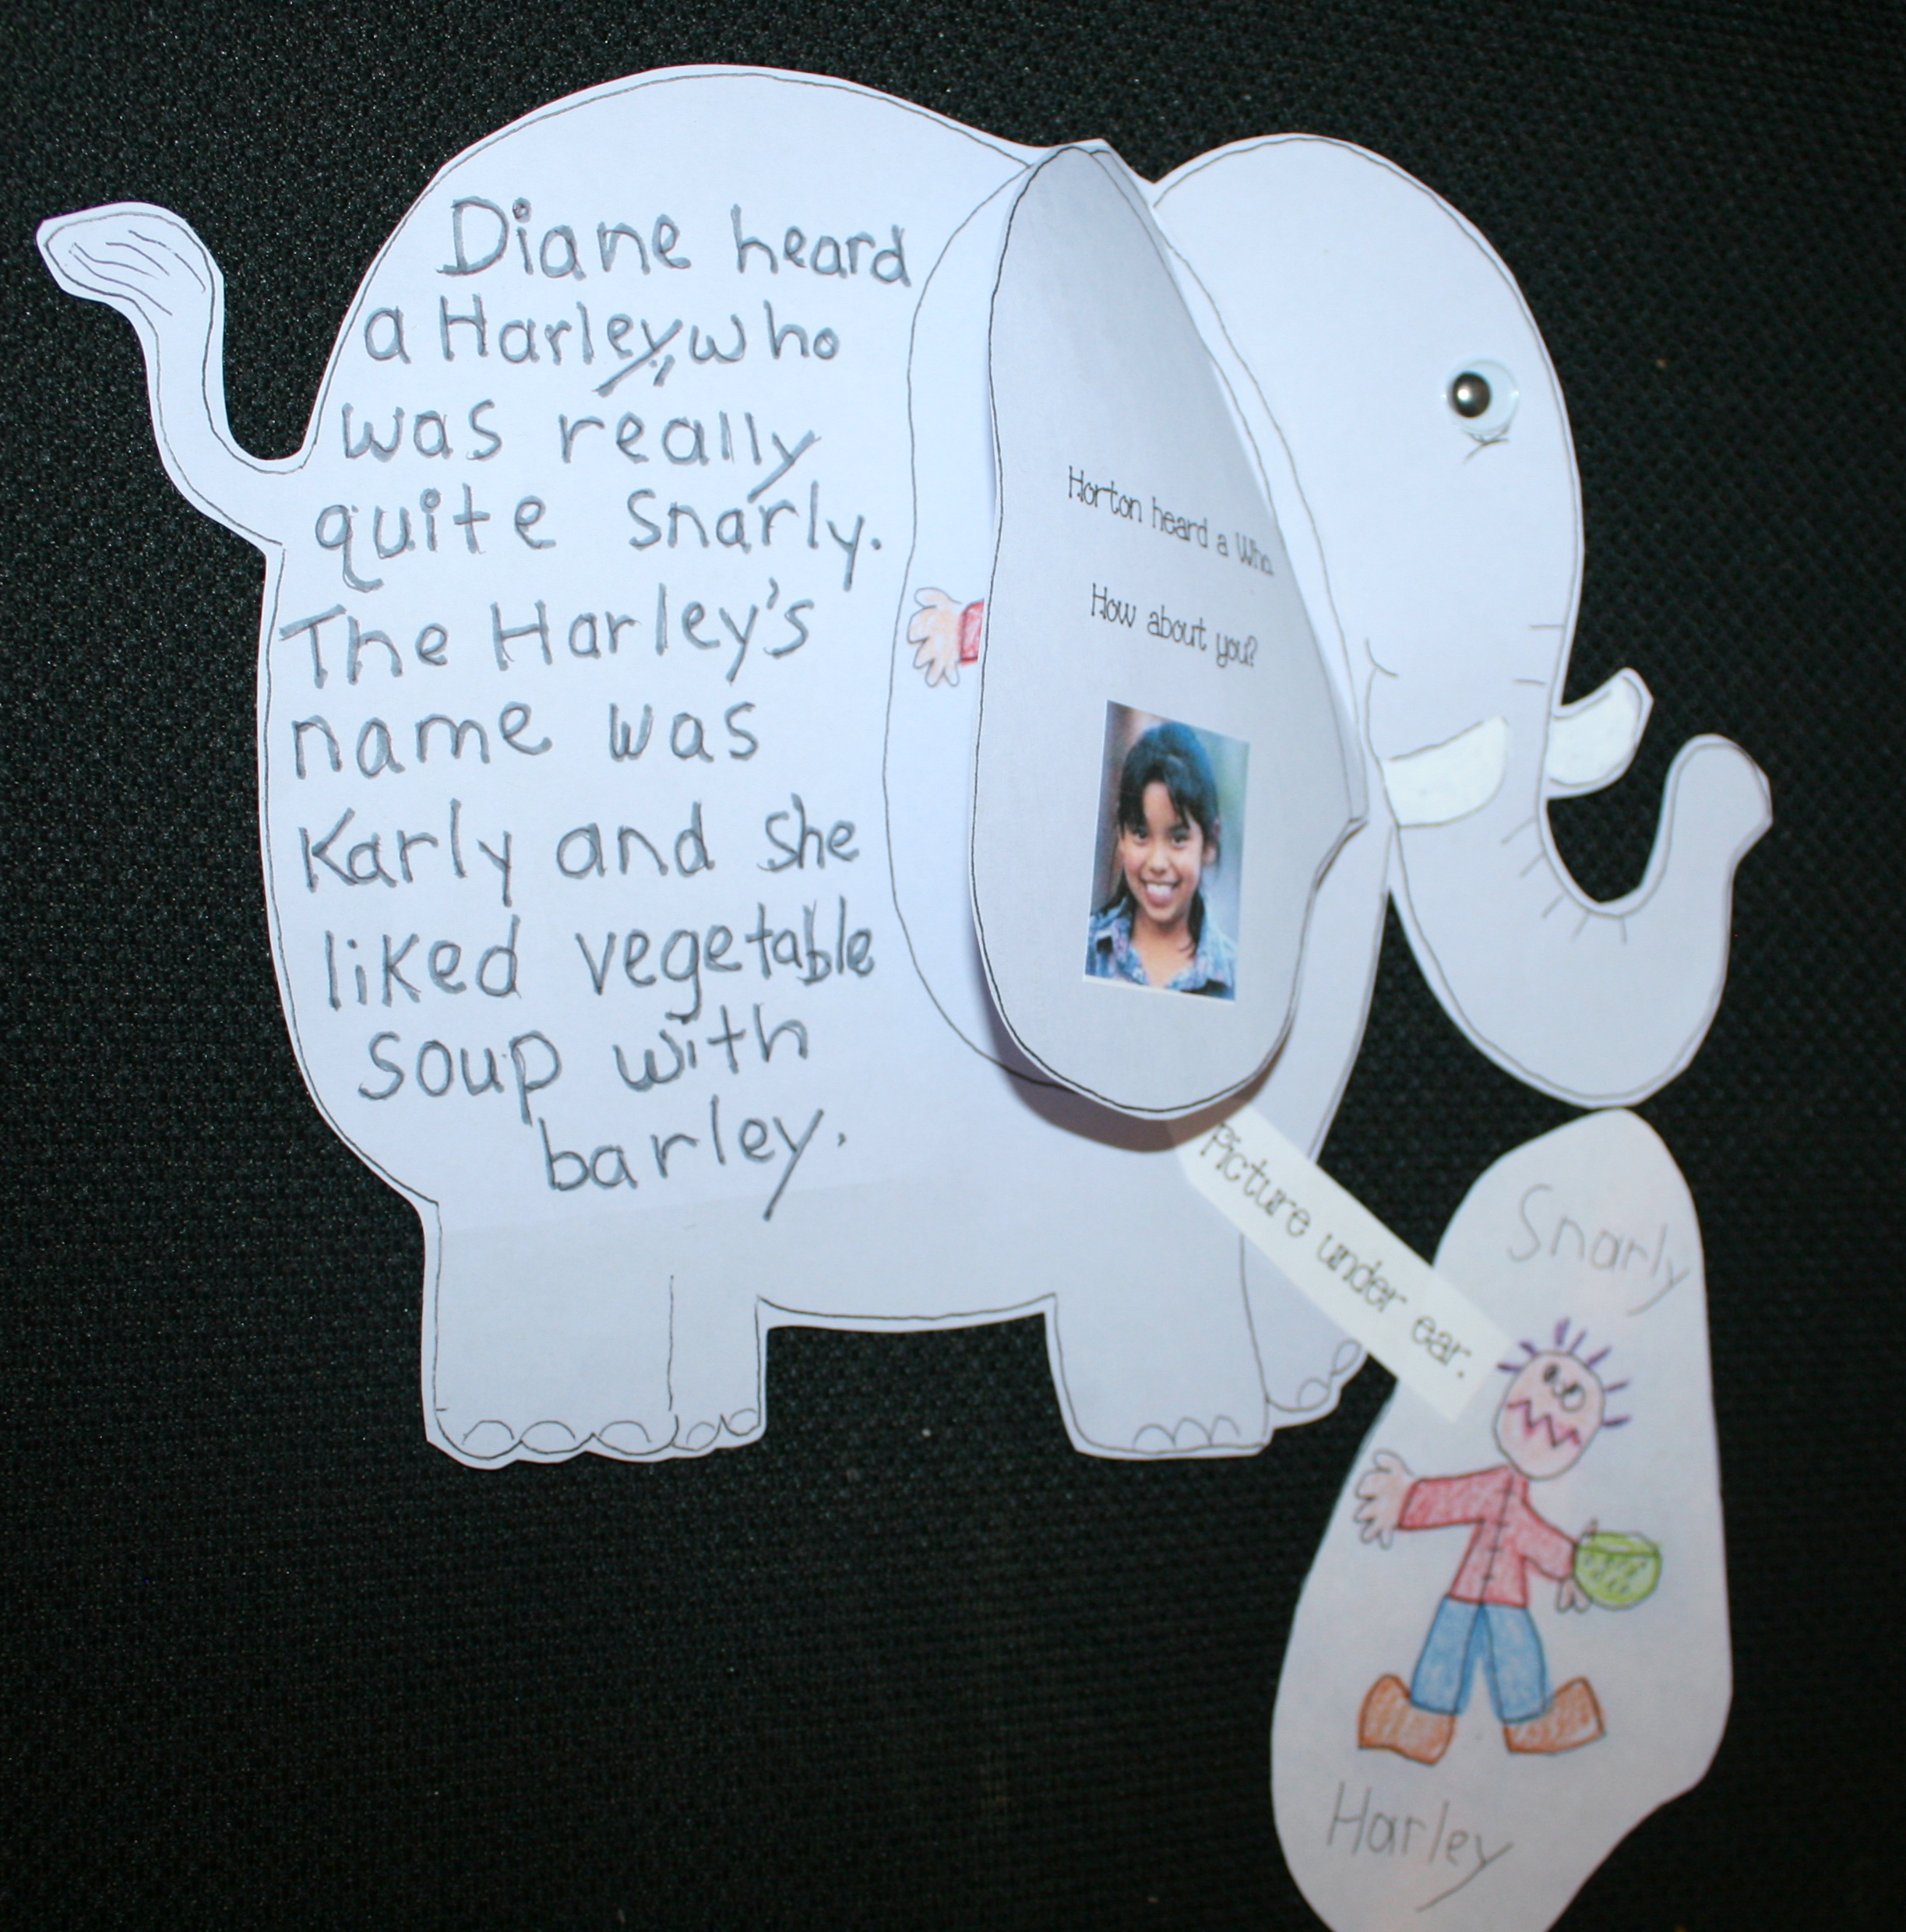 seuss activities, horton activities, seuss lessons, horton lessons, activities for horton hears a who, seuss writing prompts, horton writing prompts, elephants, writing bulletin boards, seuss bulletin boards, horton bulletin boards, spring bulletin boards, march is reading month bulletin boards, whoville activities, Dr. seuss crafts, elephant crafts, writing prompts for march, horton crafts,